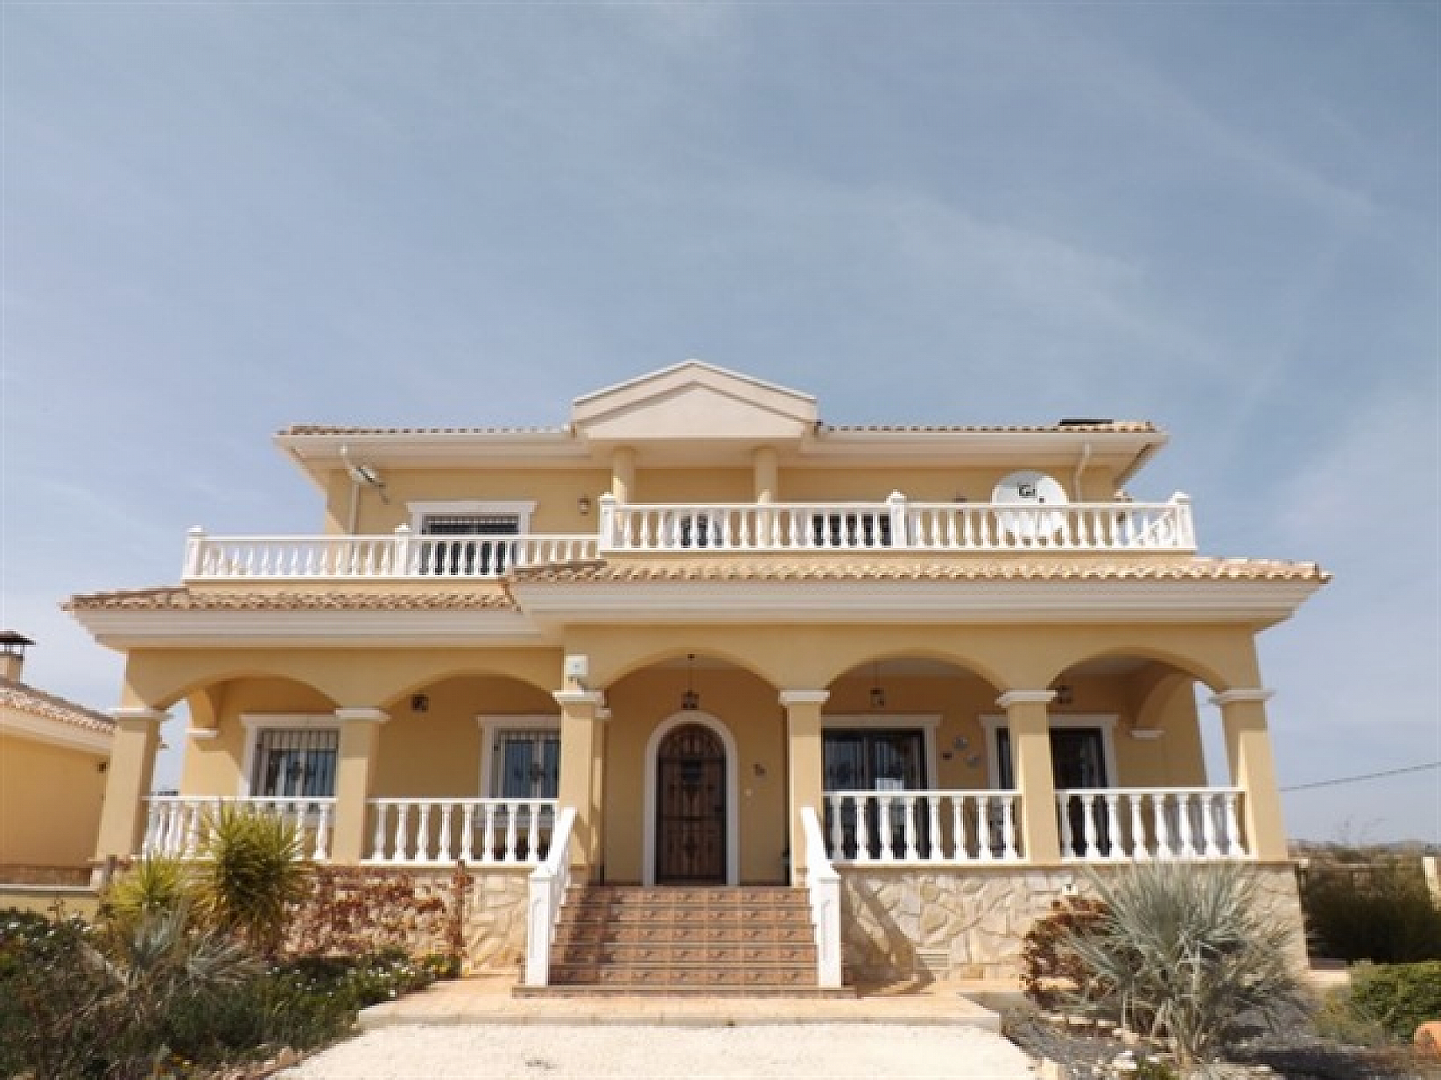 Luxury New Build with Pool €239,000 inc. land, licences & legalities ...